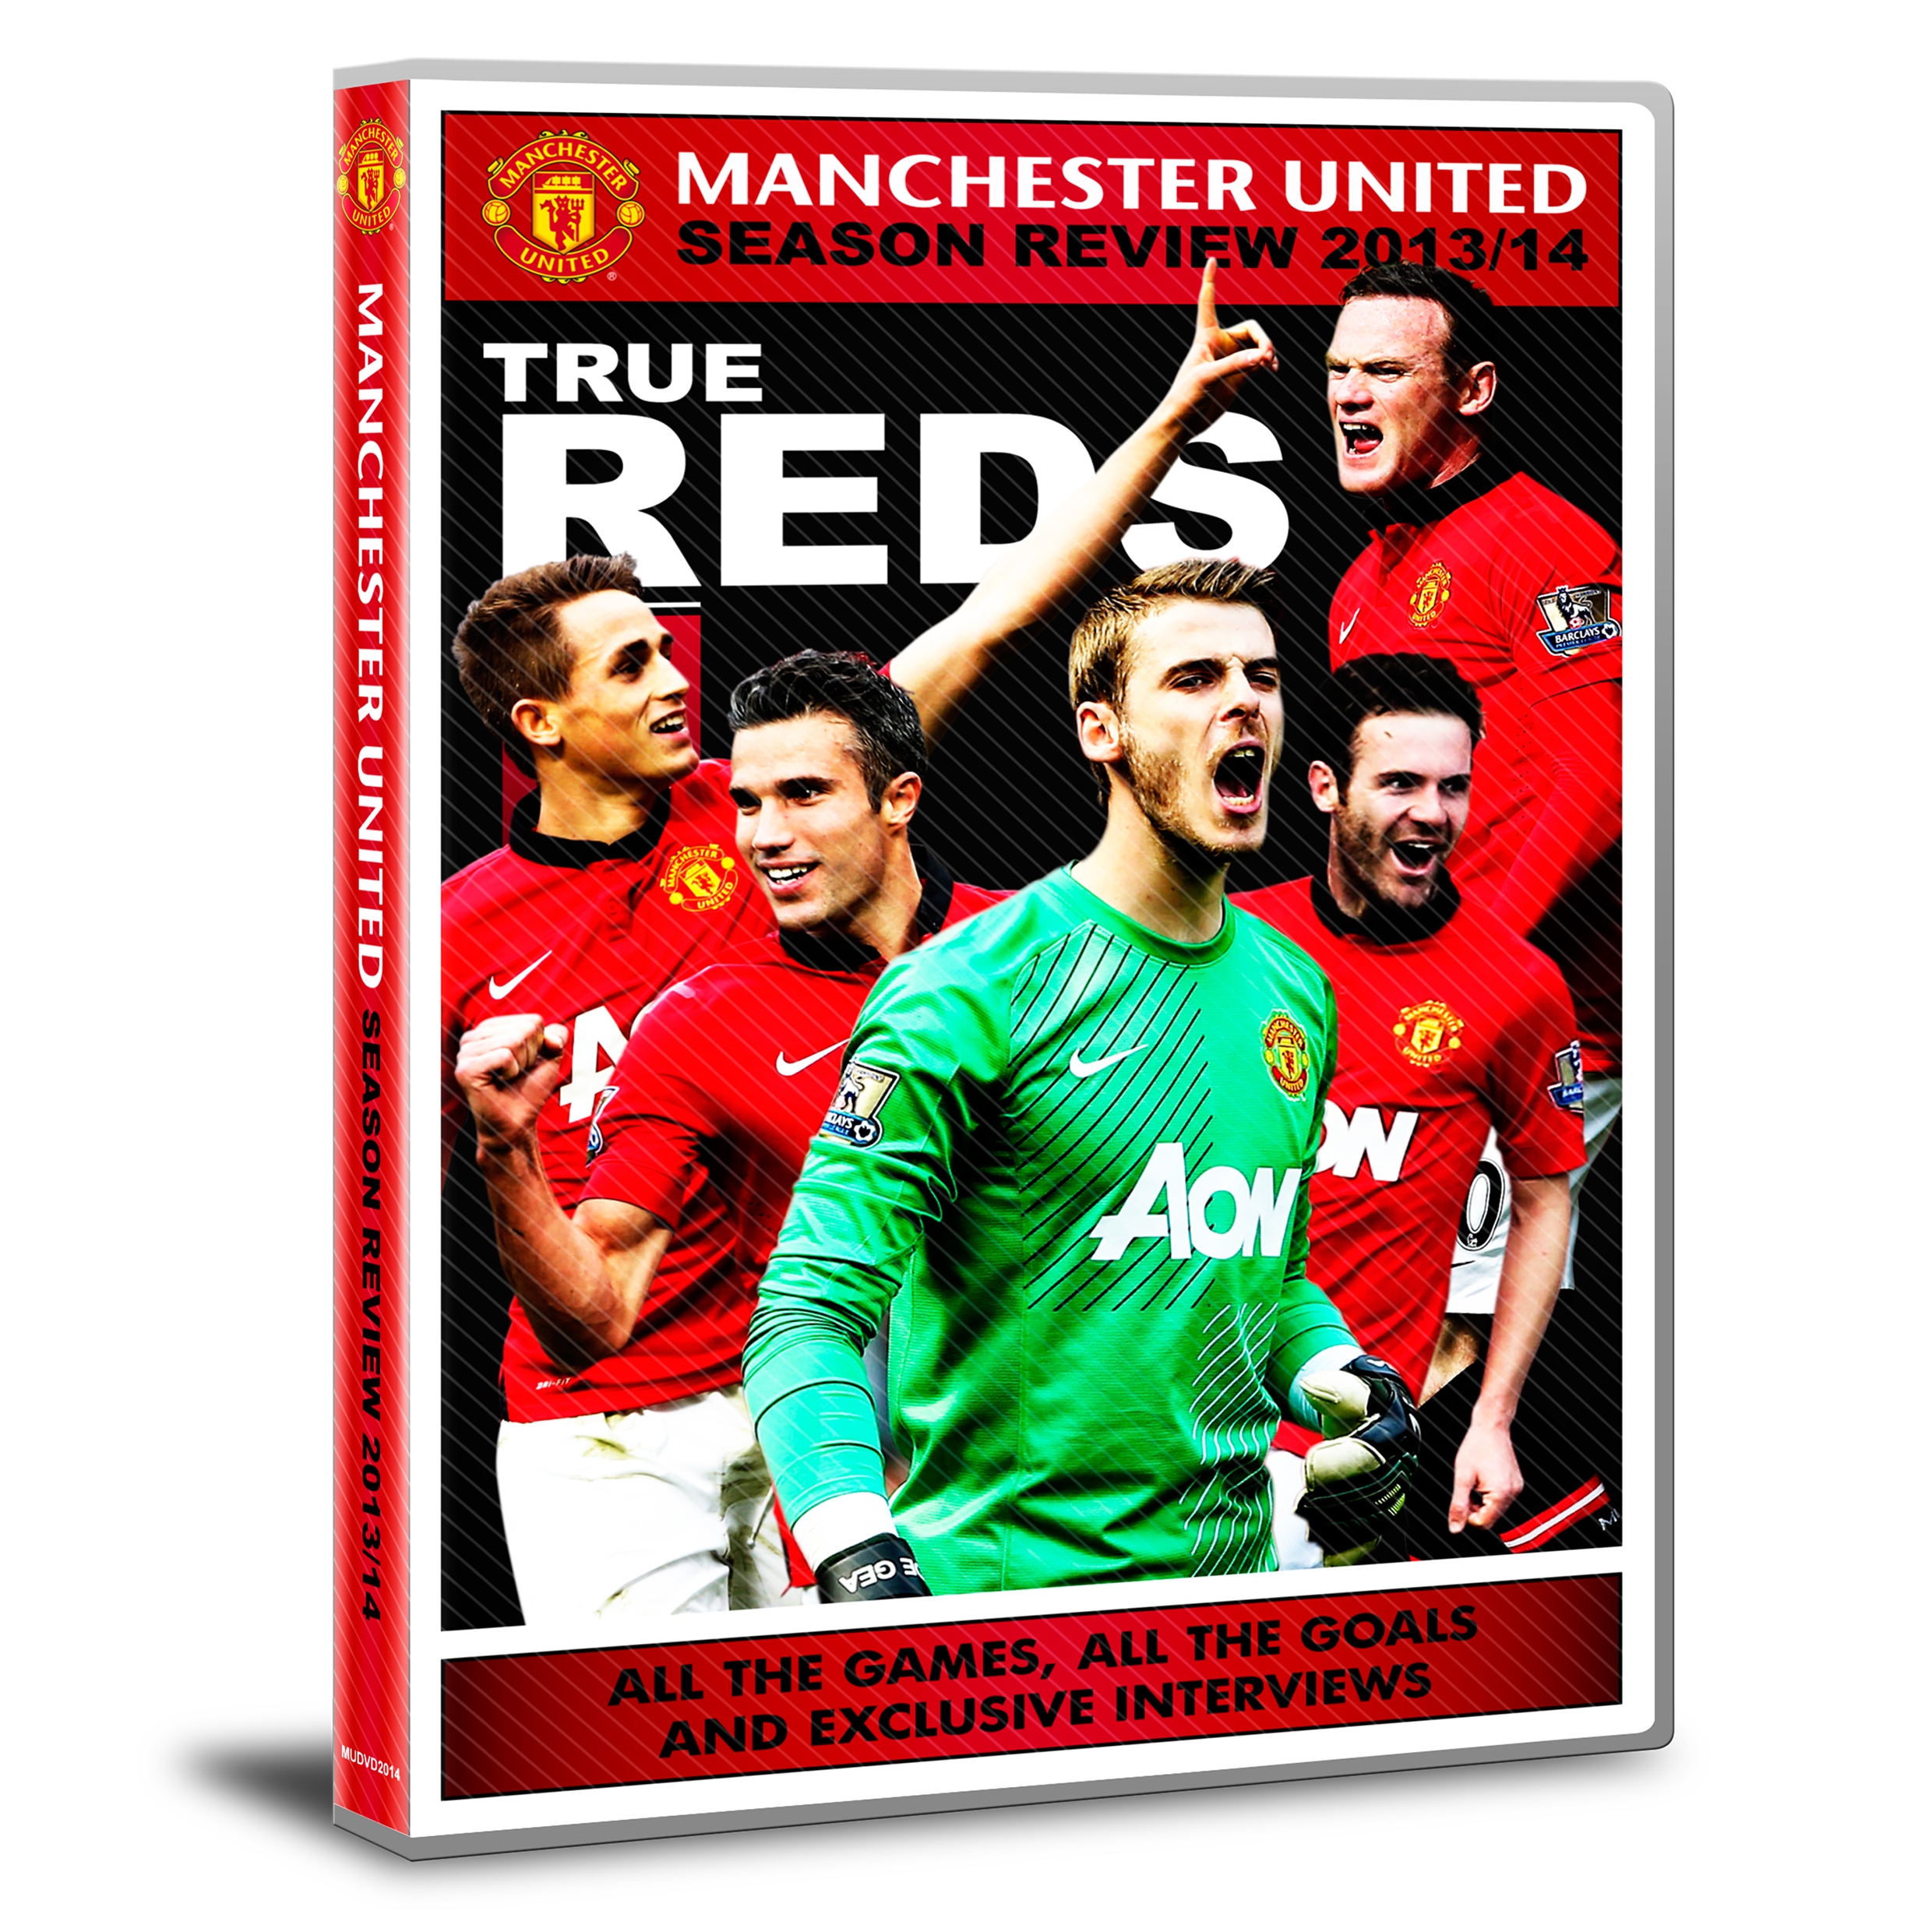 Manchester United True Red - 2013/14 Season Review DVD